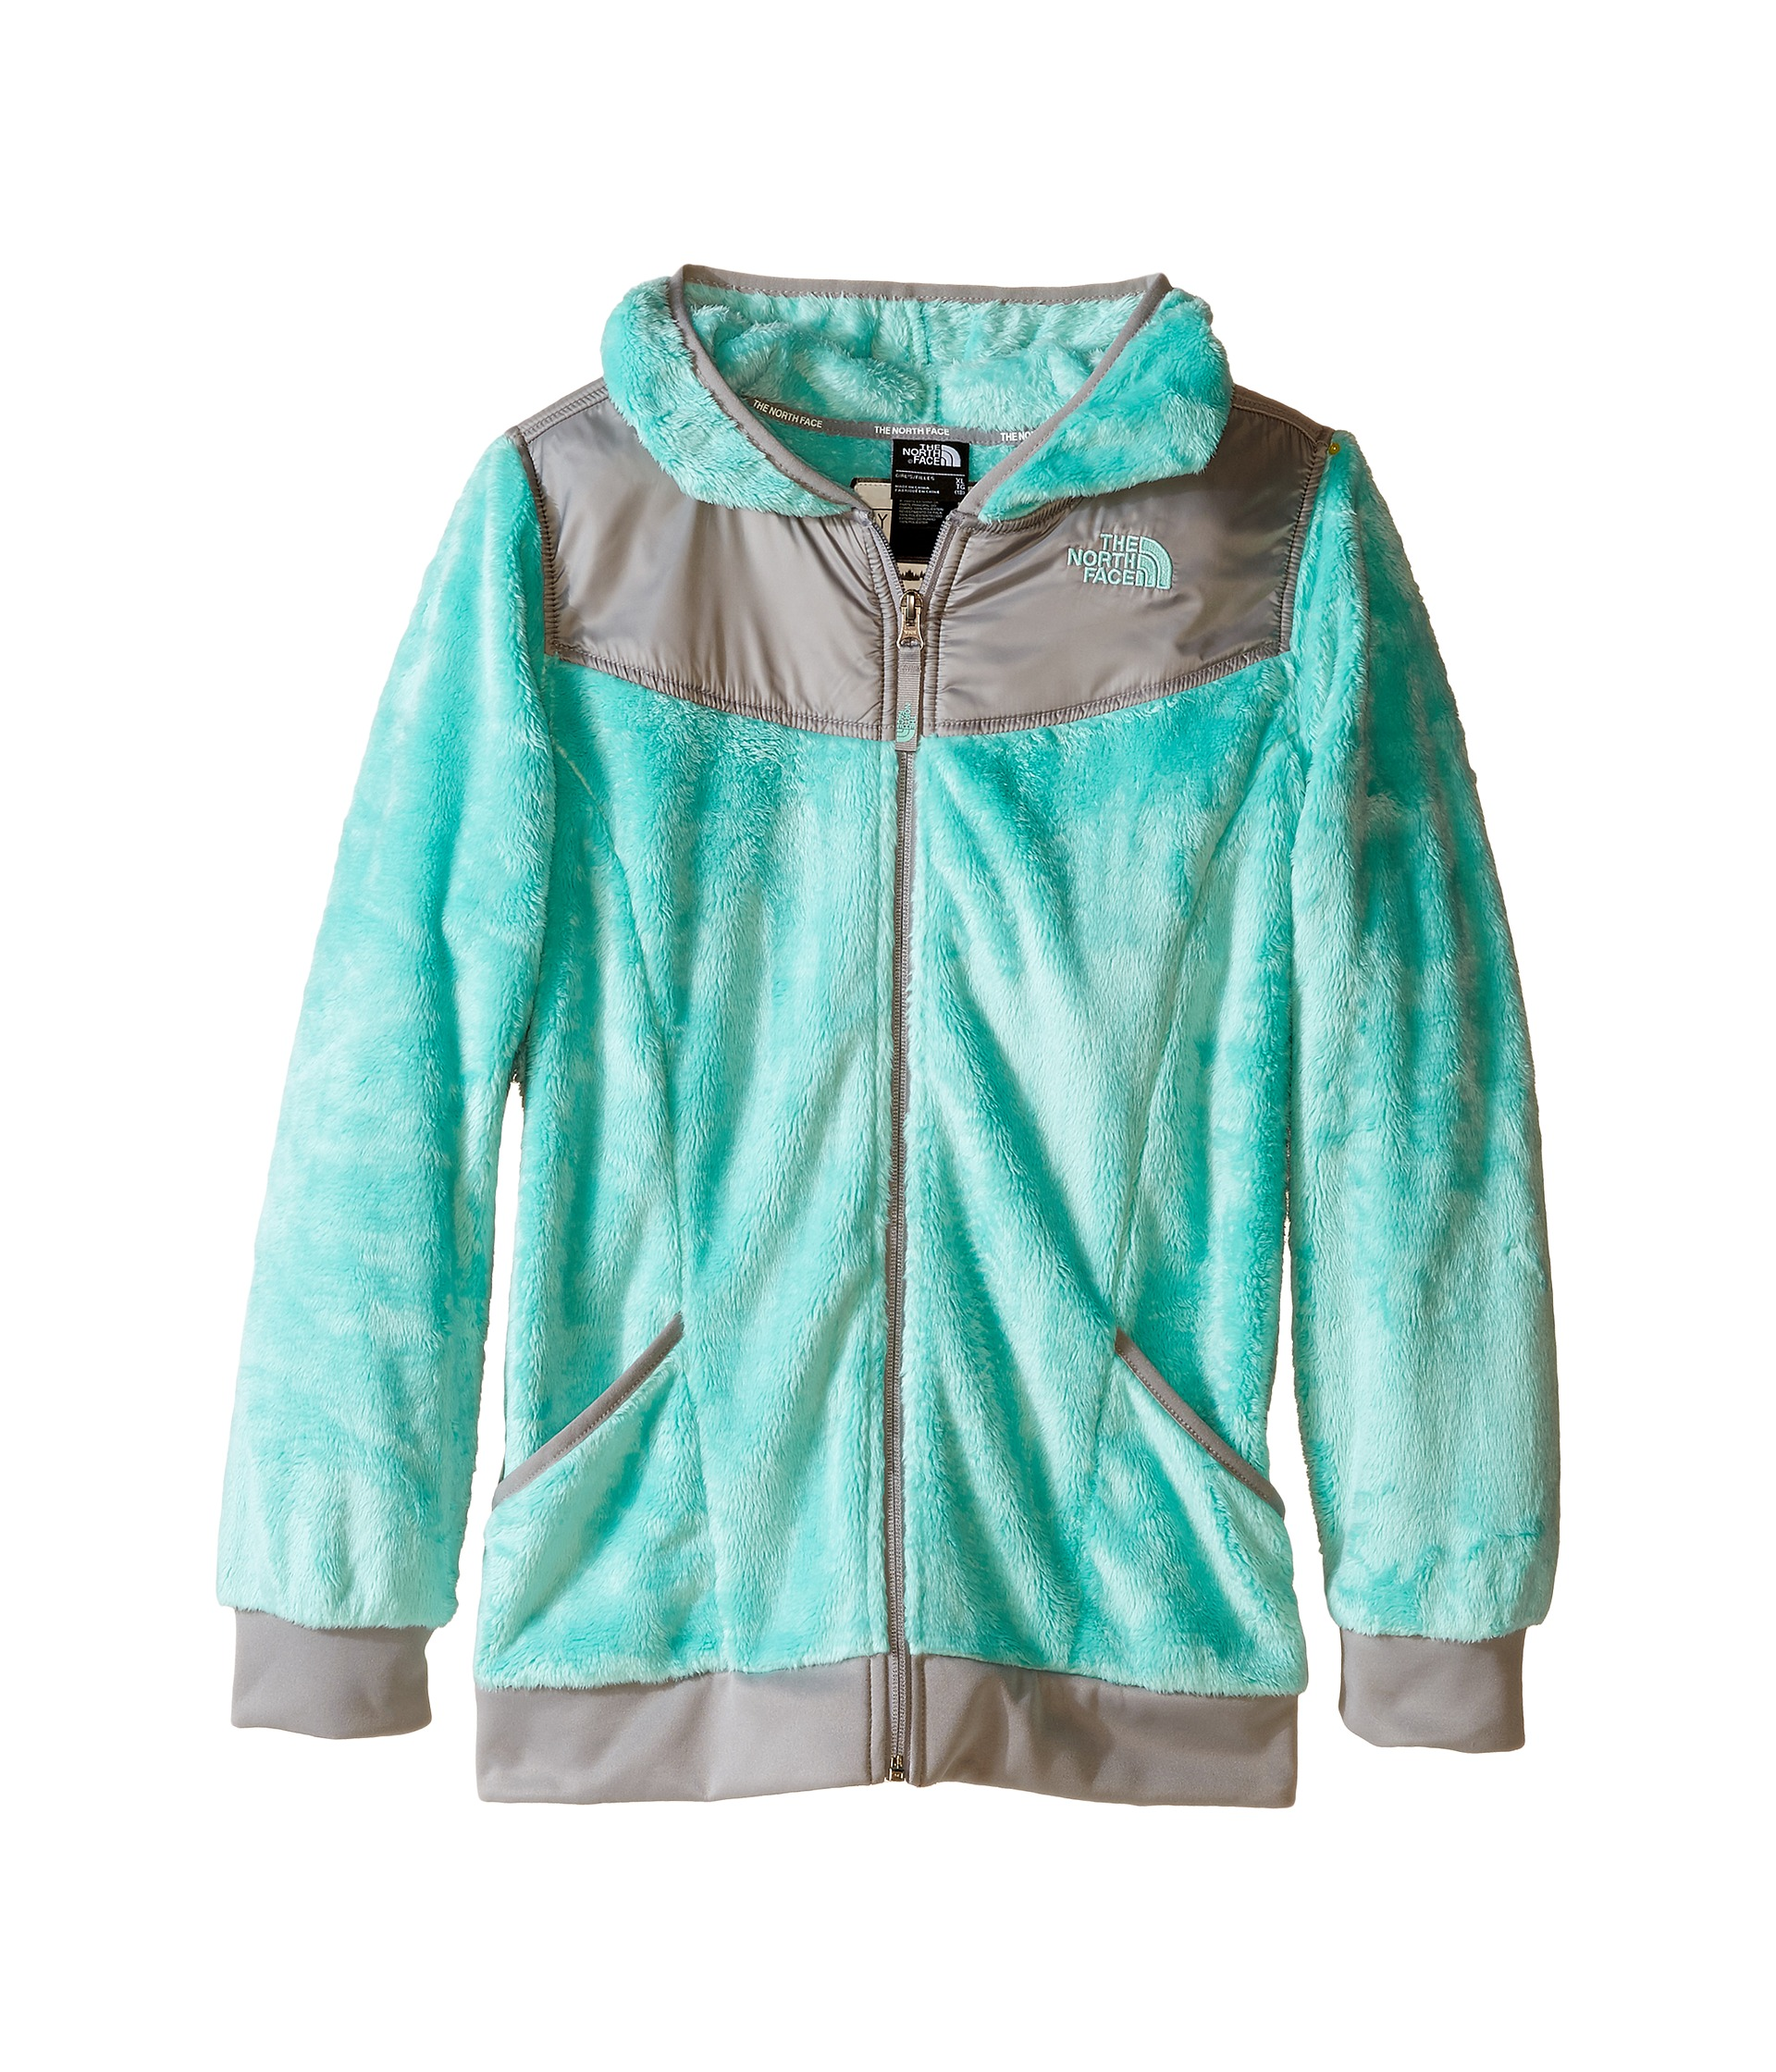 Oso north face womens jacket